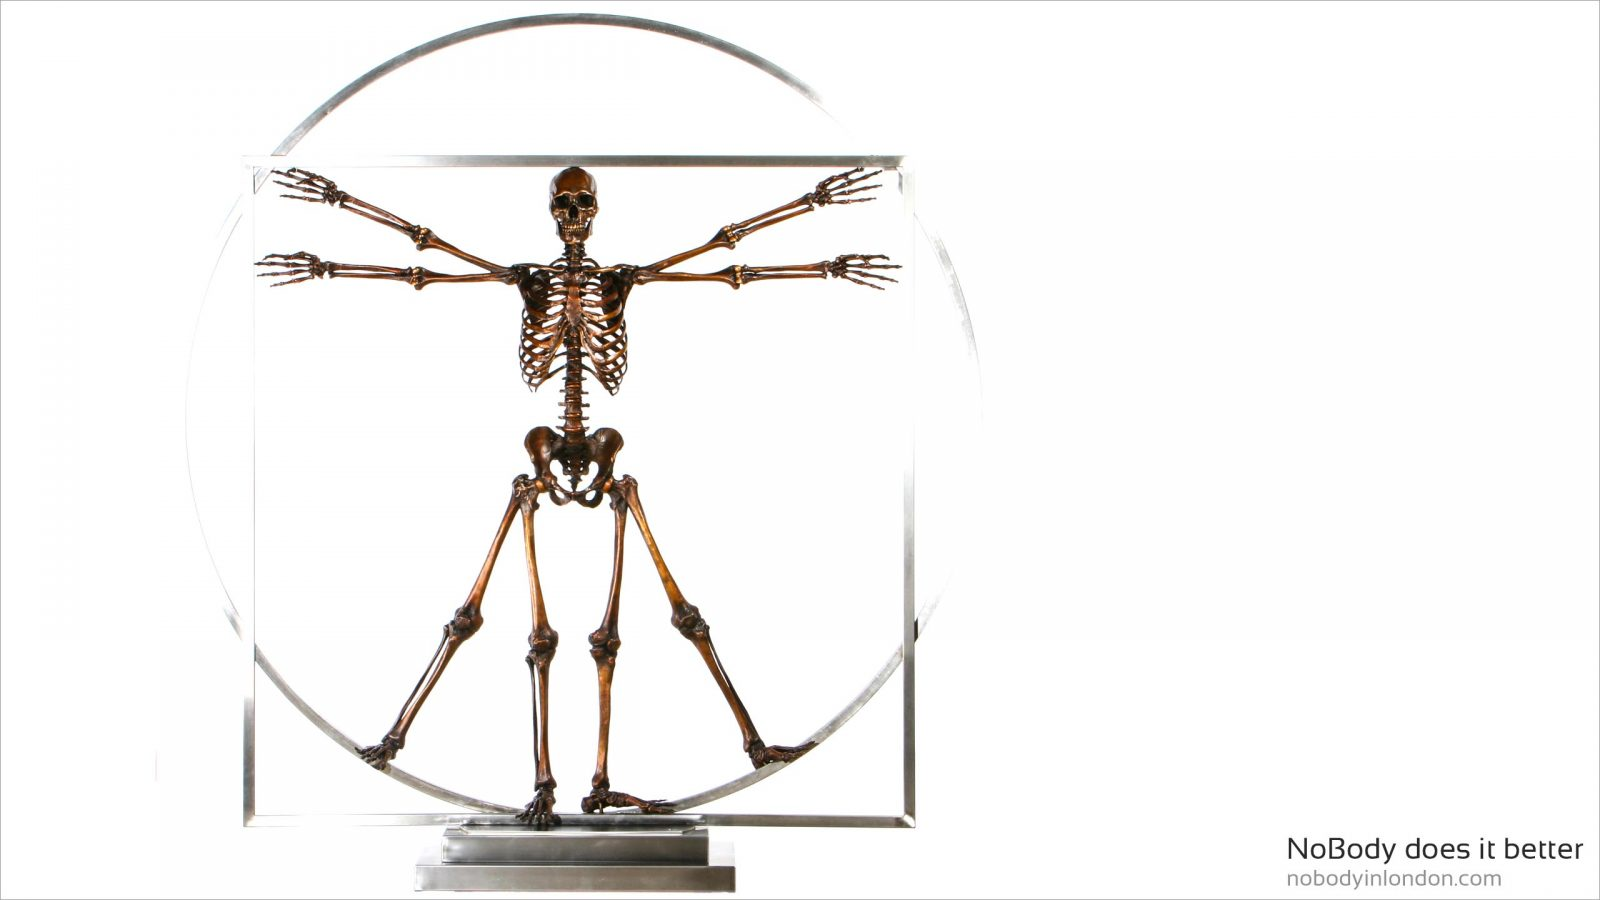 NoBody does it better, life size bronze skeleton in stainless steel frame based on Leonardo da vinci vitruvian man